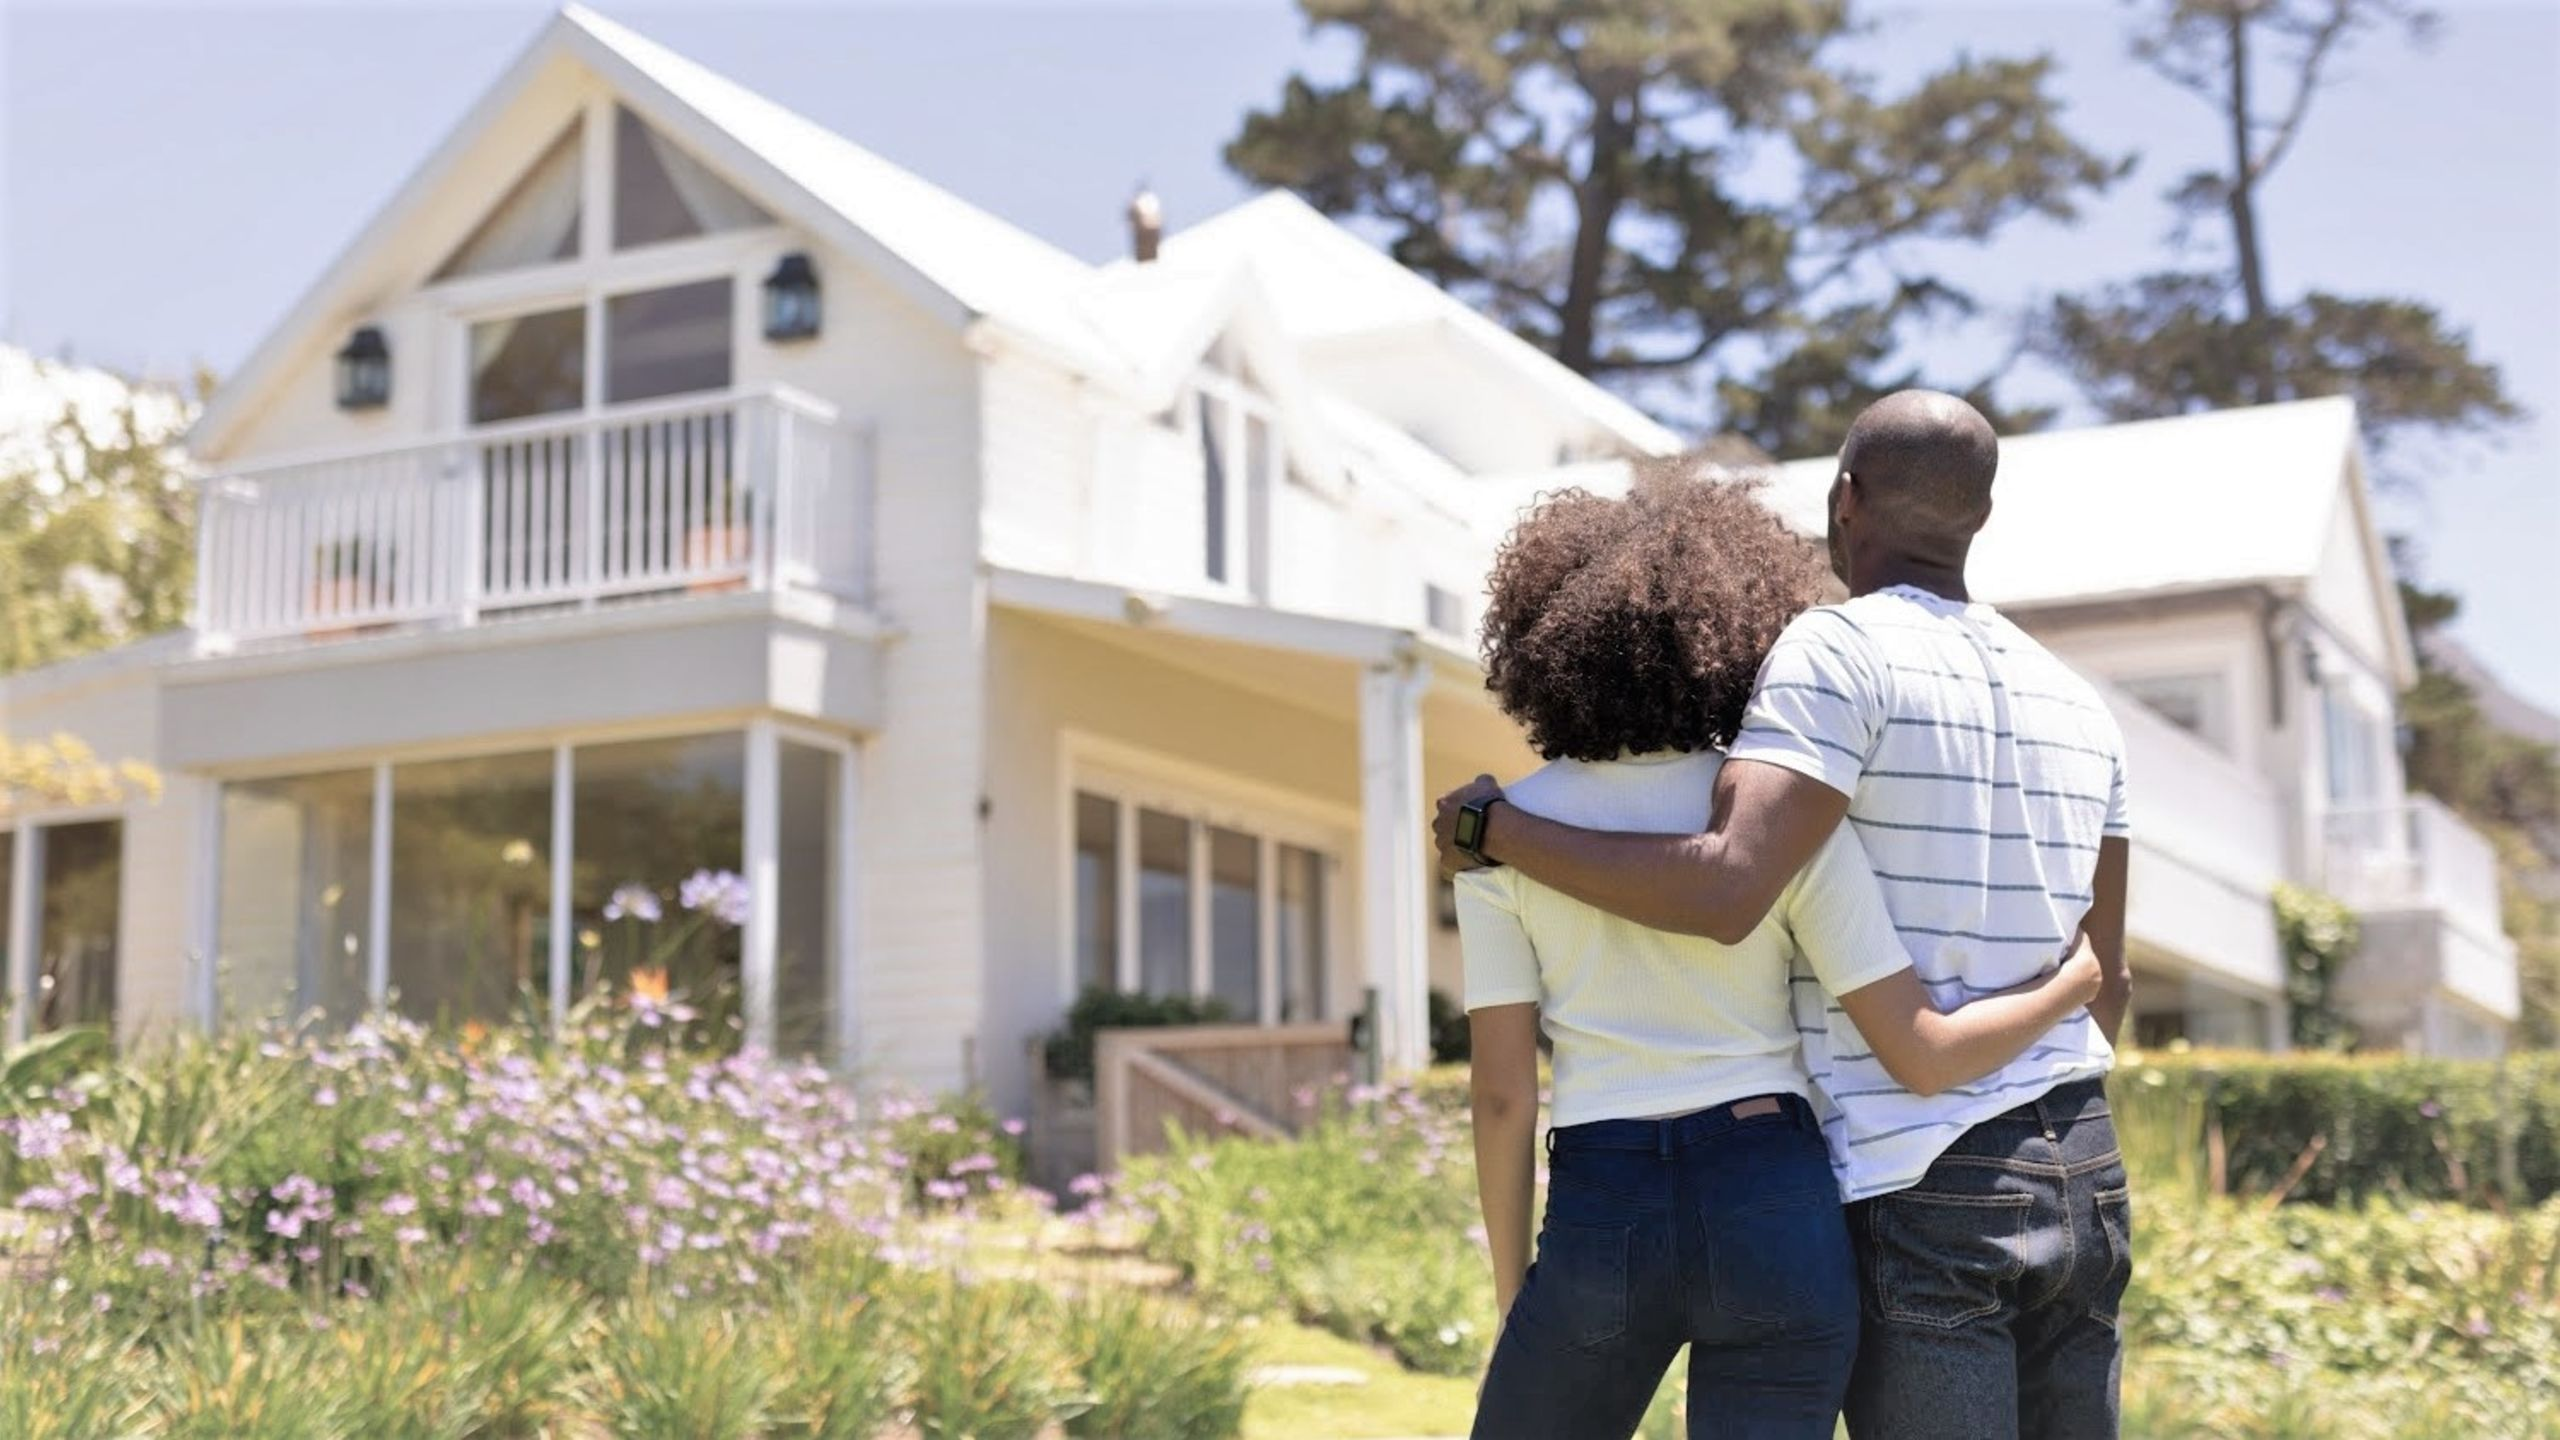 Inviting houses to turn into homes